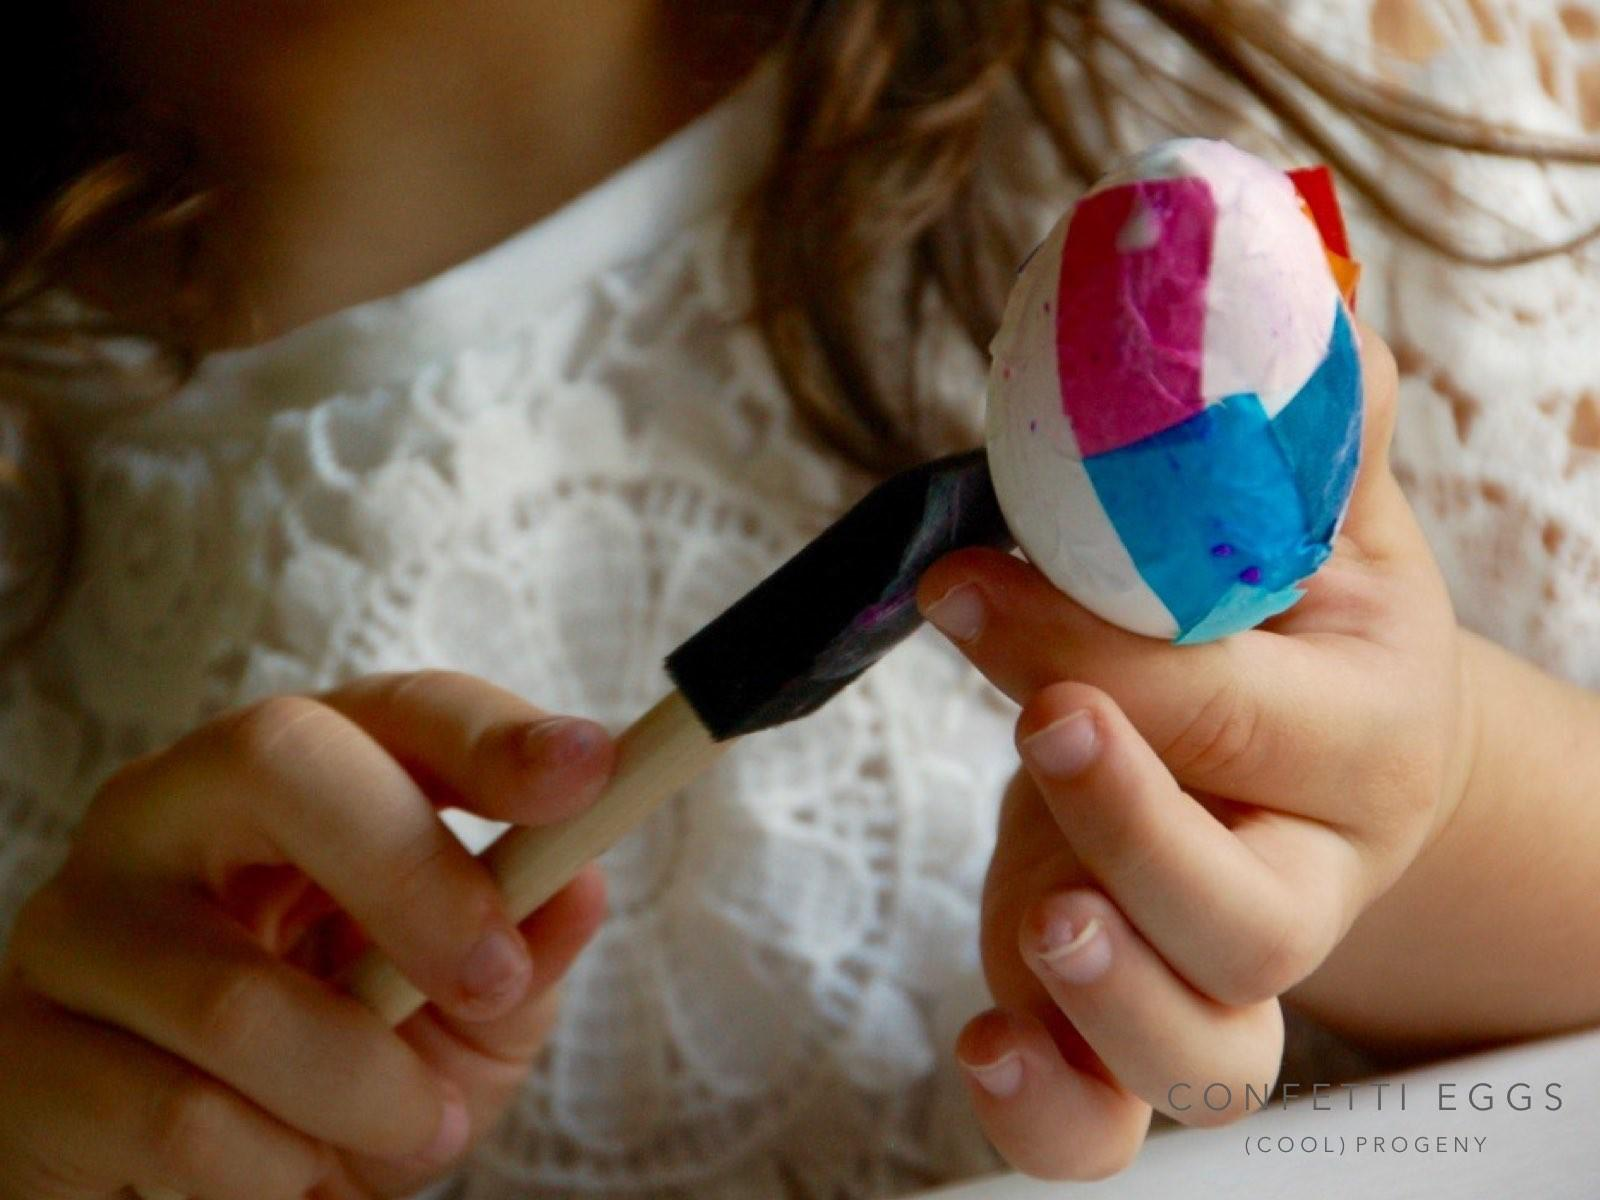 Diy Confetti Easter Eggs Cool Progeny